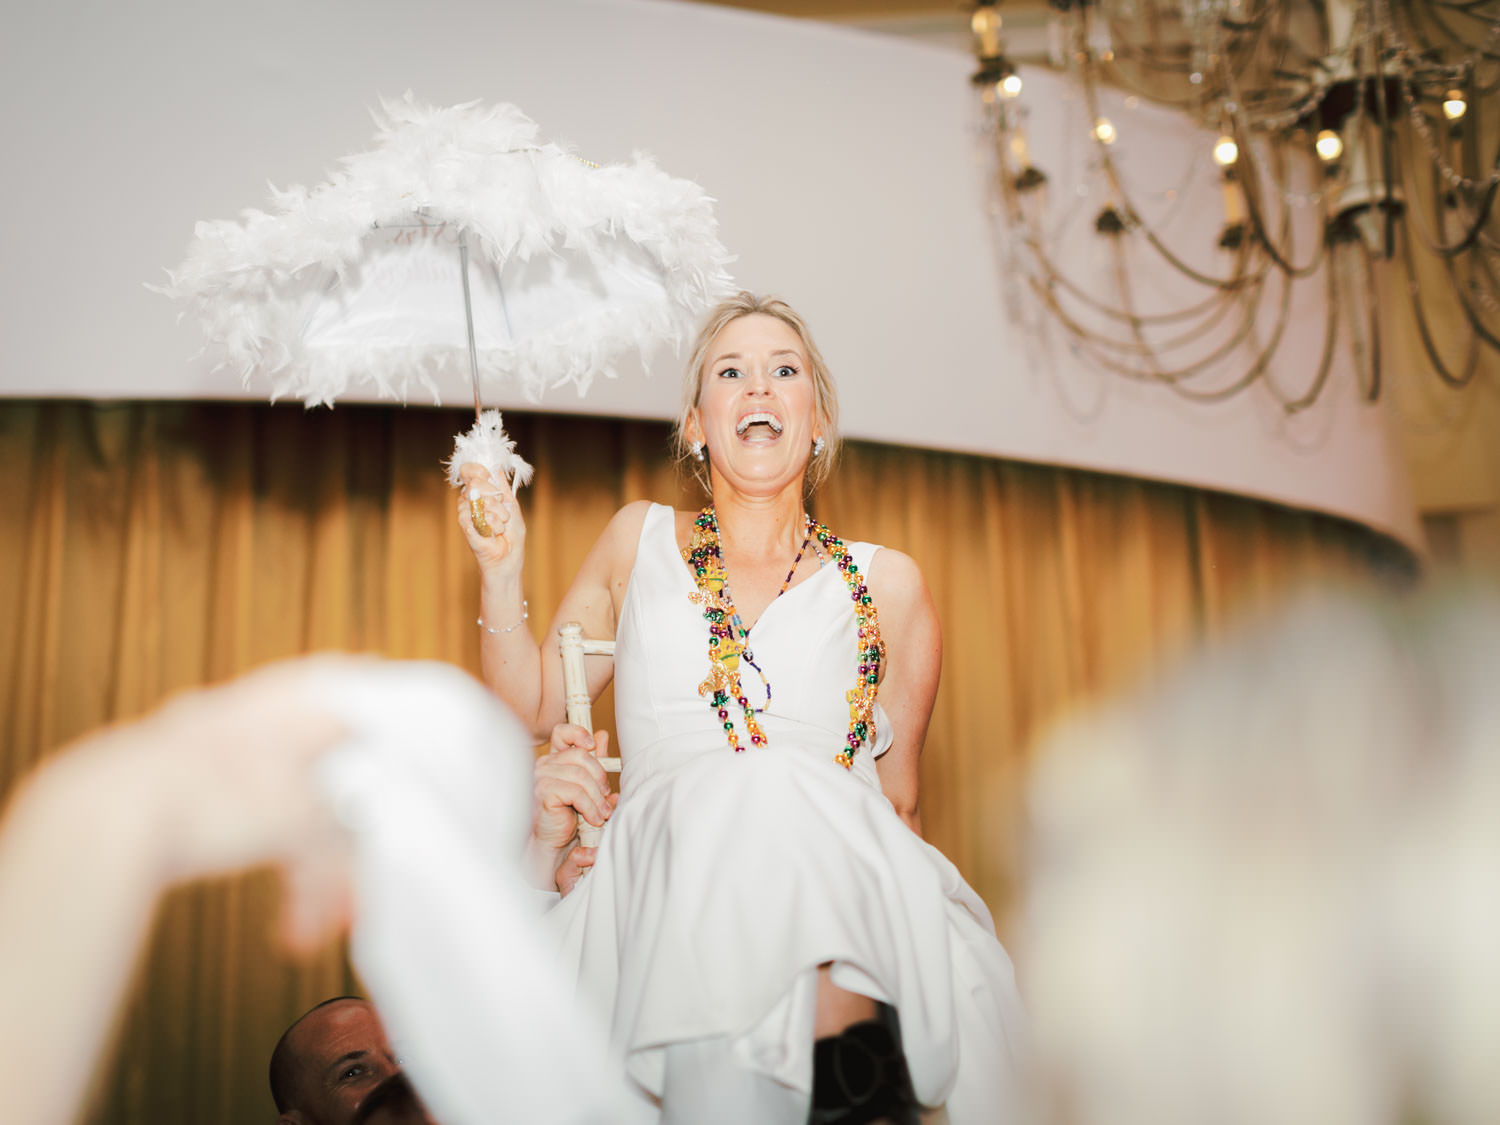 Bride held up on a chair during New Orleans second line with umbrellas and Mardi Gras beads. Hotel Del Wedding reception by Cavin Elizabeth.